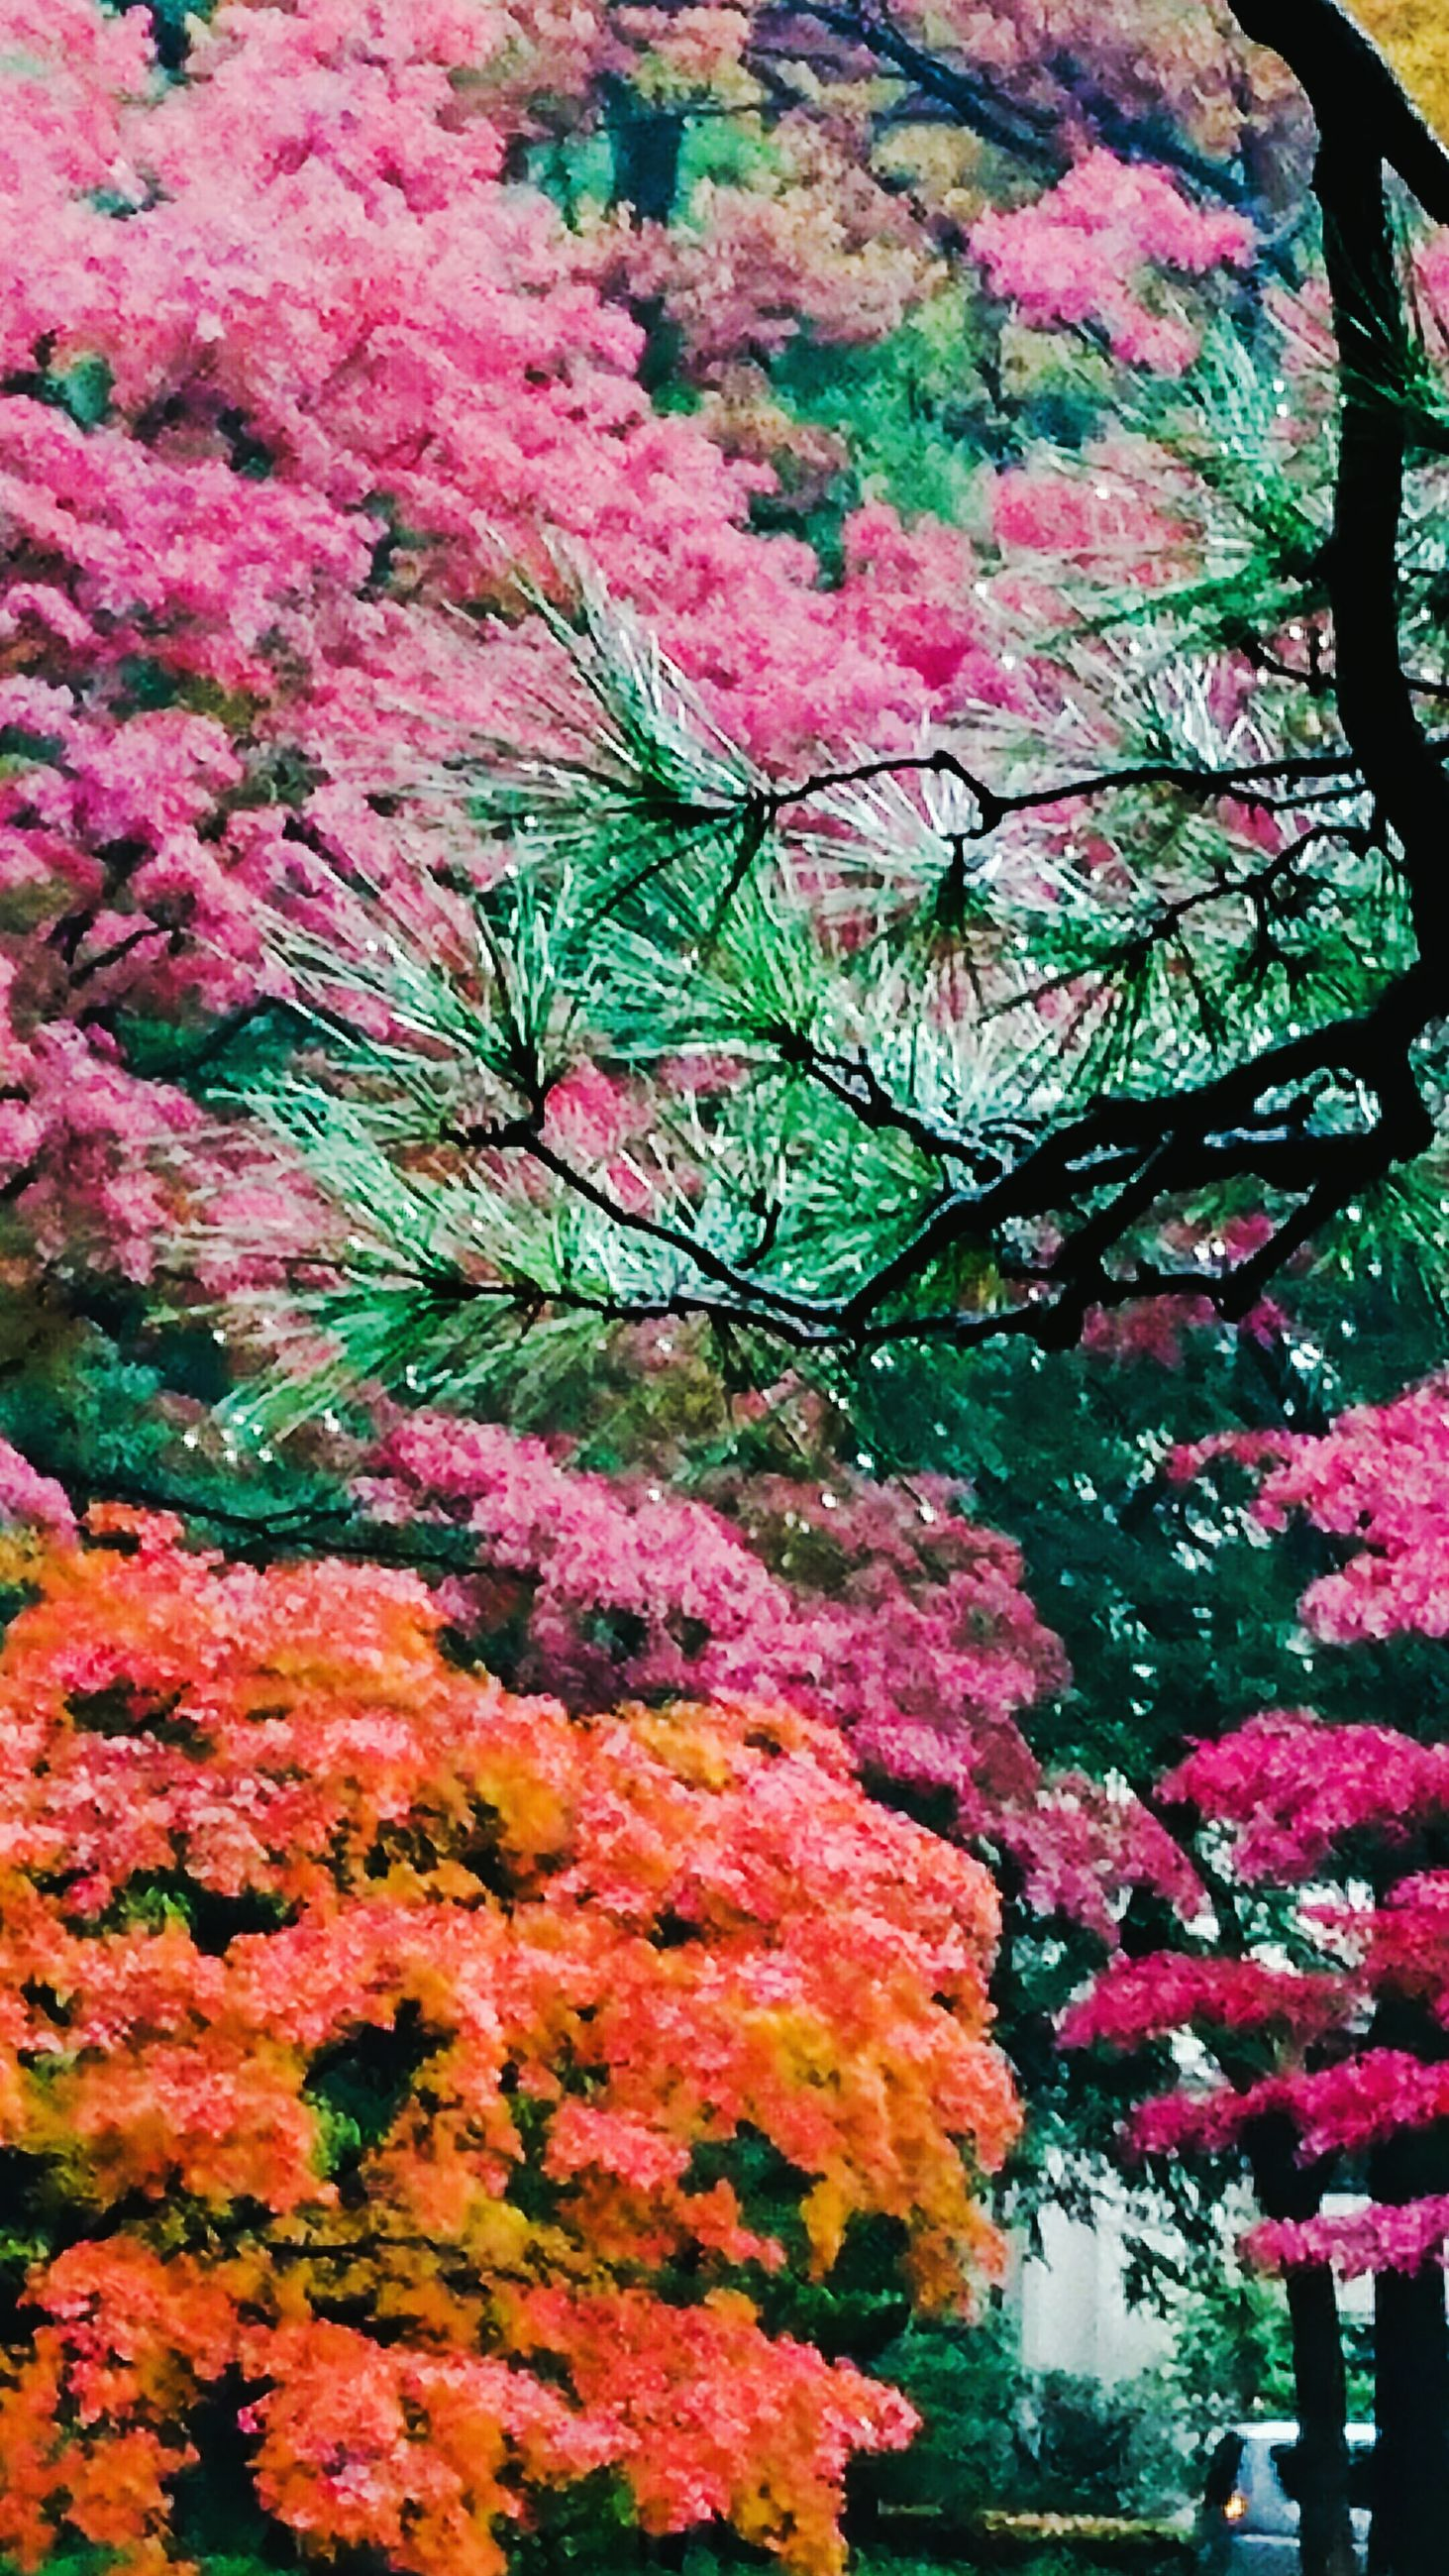 growth, nature, pink color, flower, plant, tree, outdoors, no people, freshness, fragility, close-up, day, beauty in nature